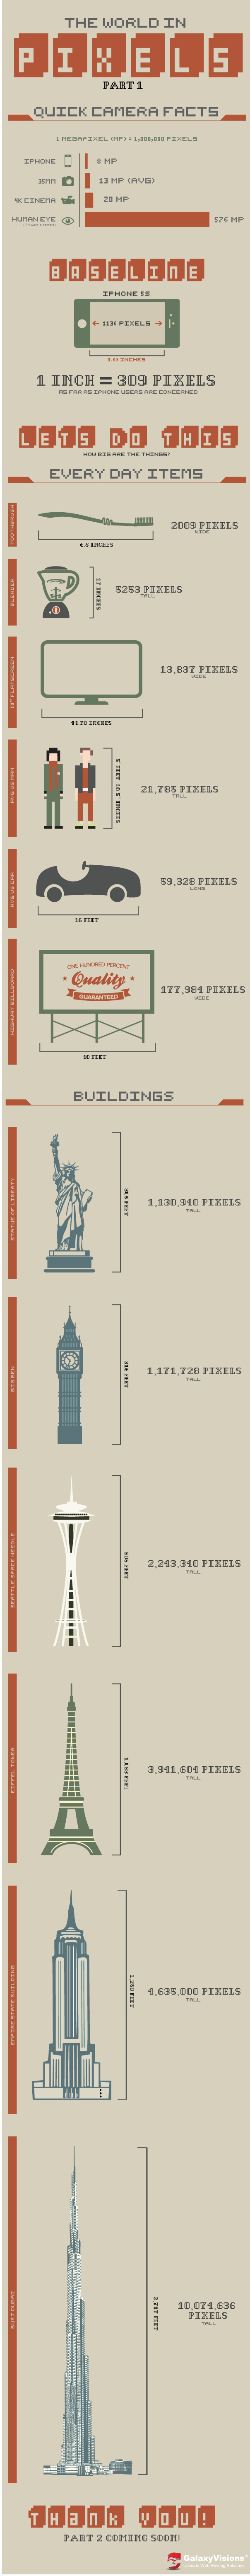 How Big Is The World In Pixels?